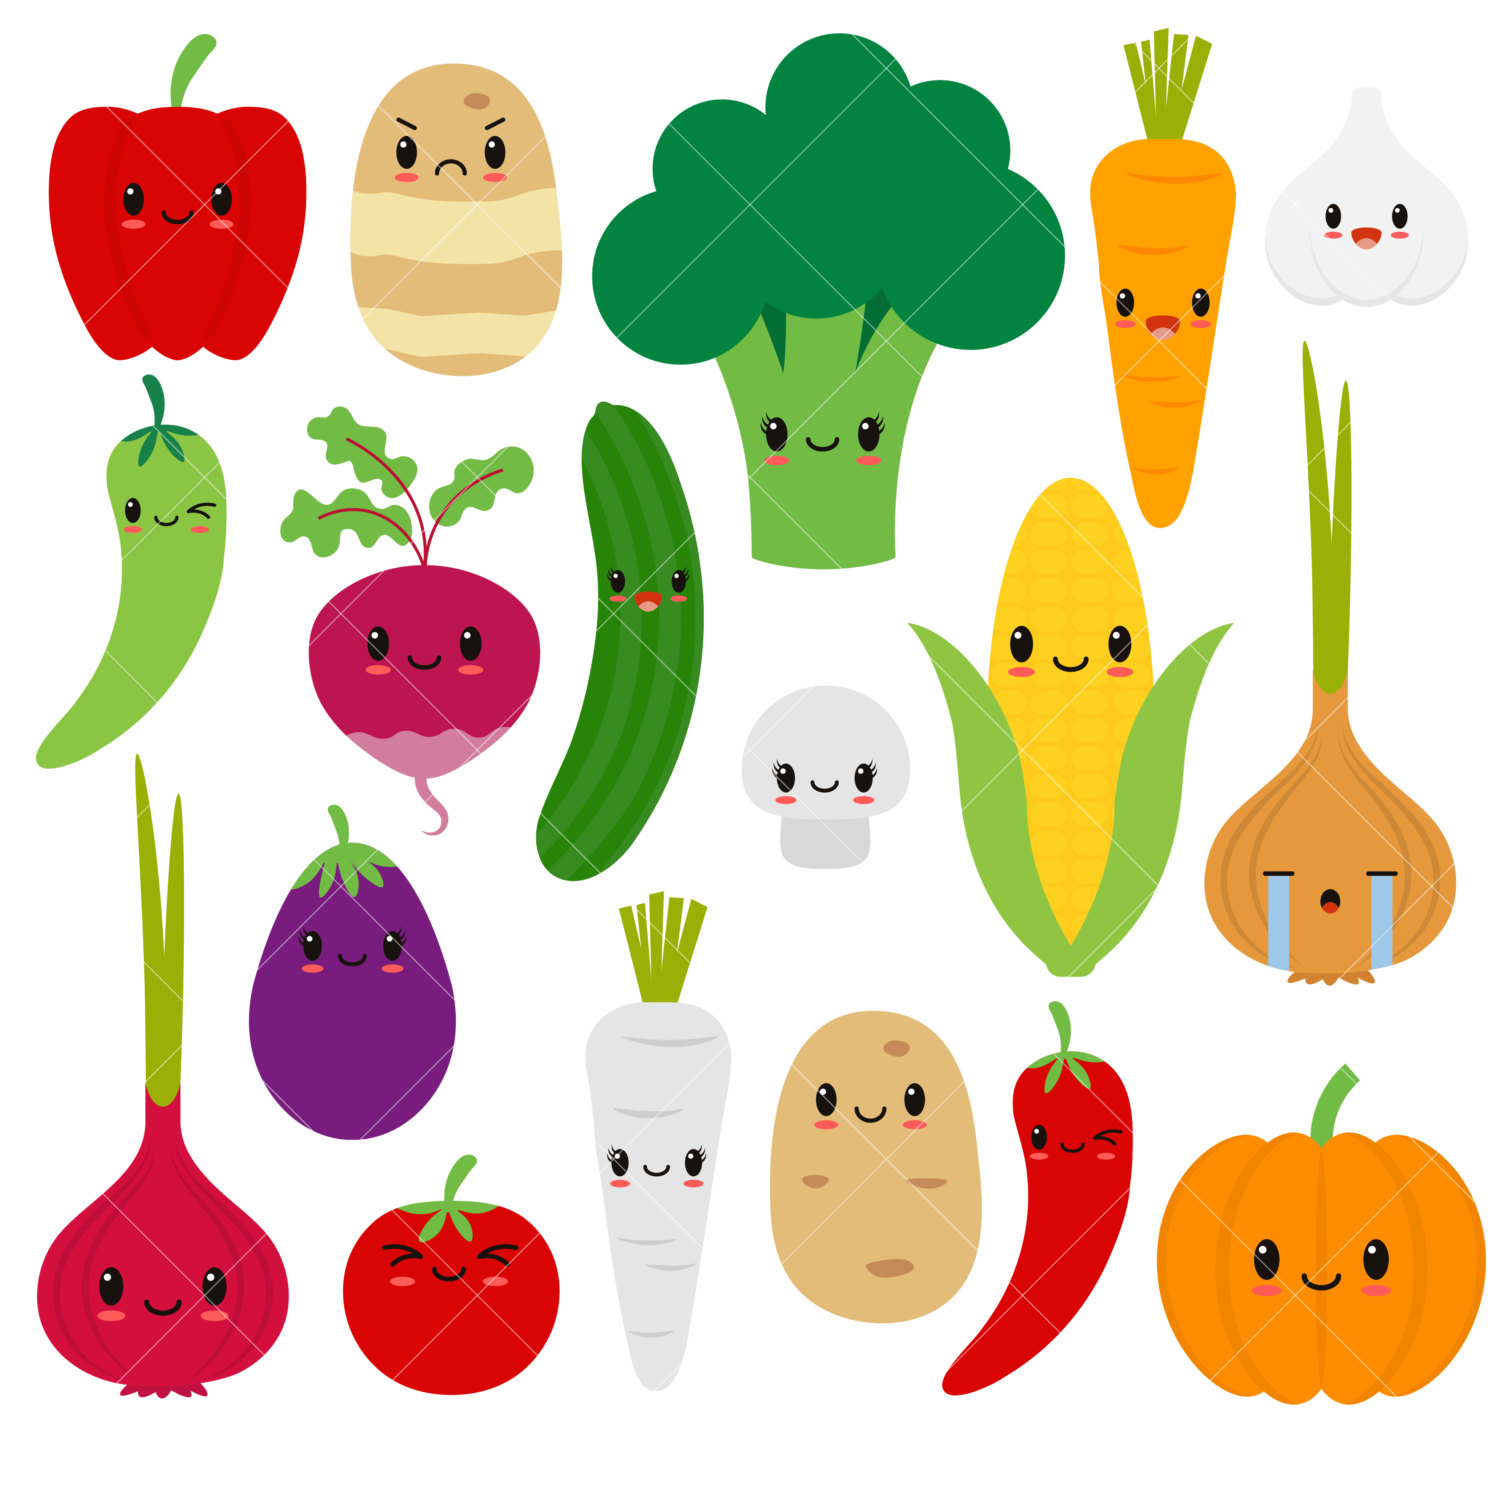 1500x1500 Kawaii Vegetables Cute Vegetable Clipart Happy Veggies